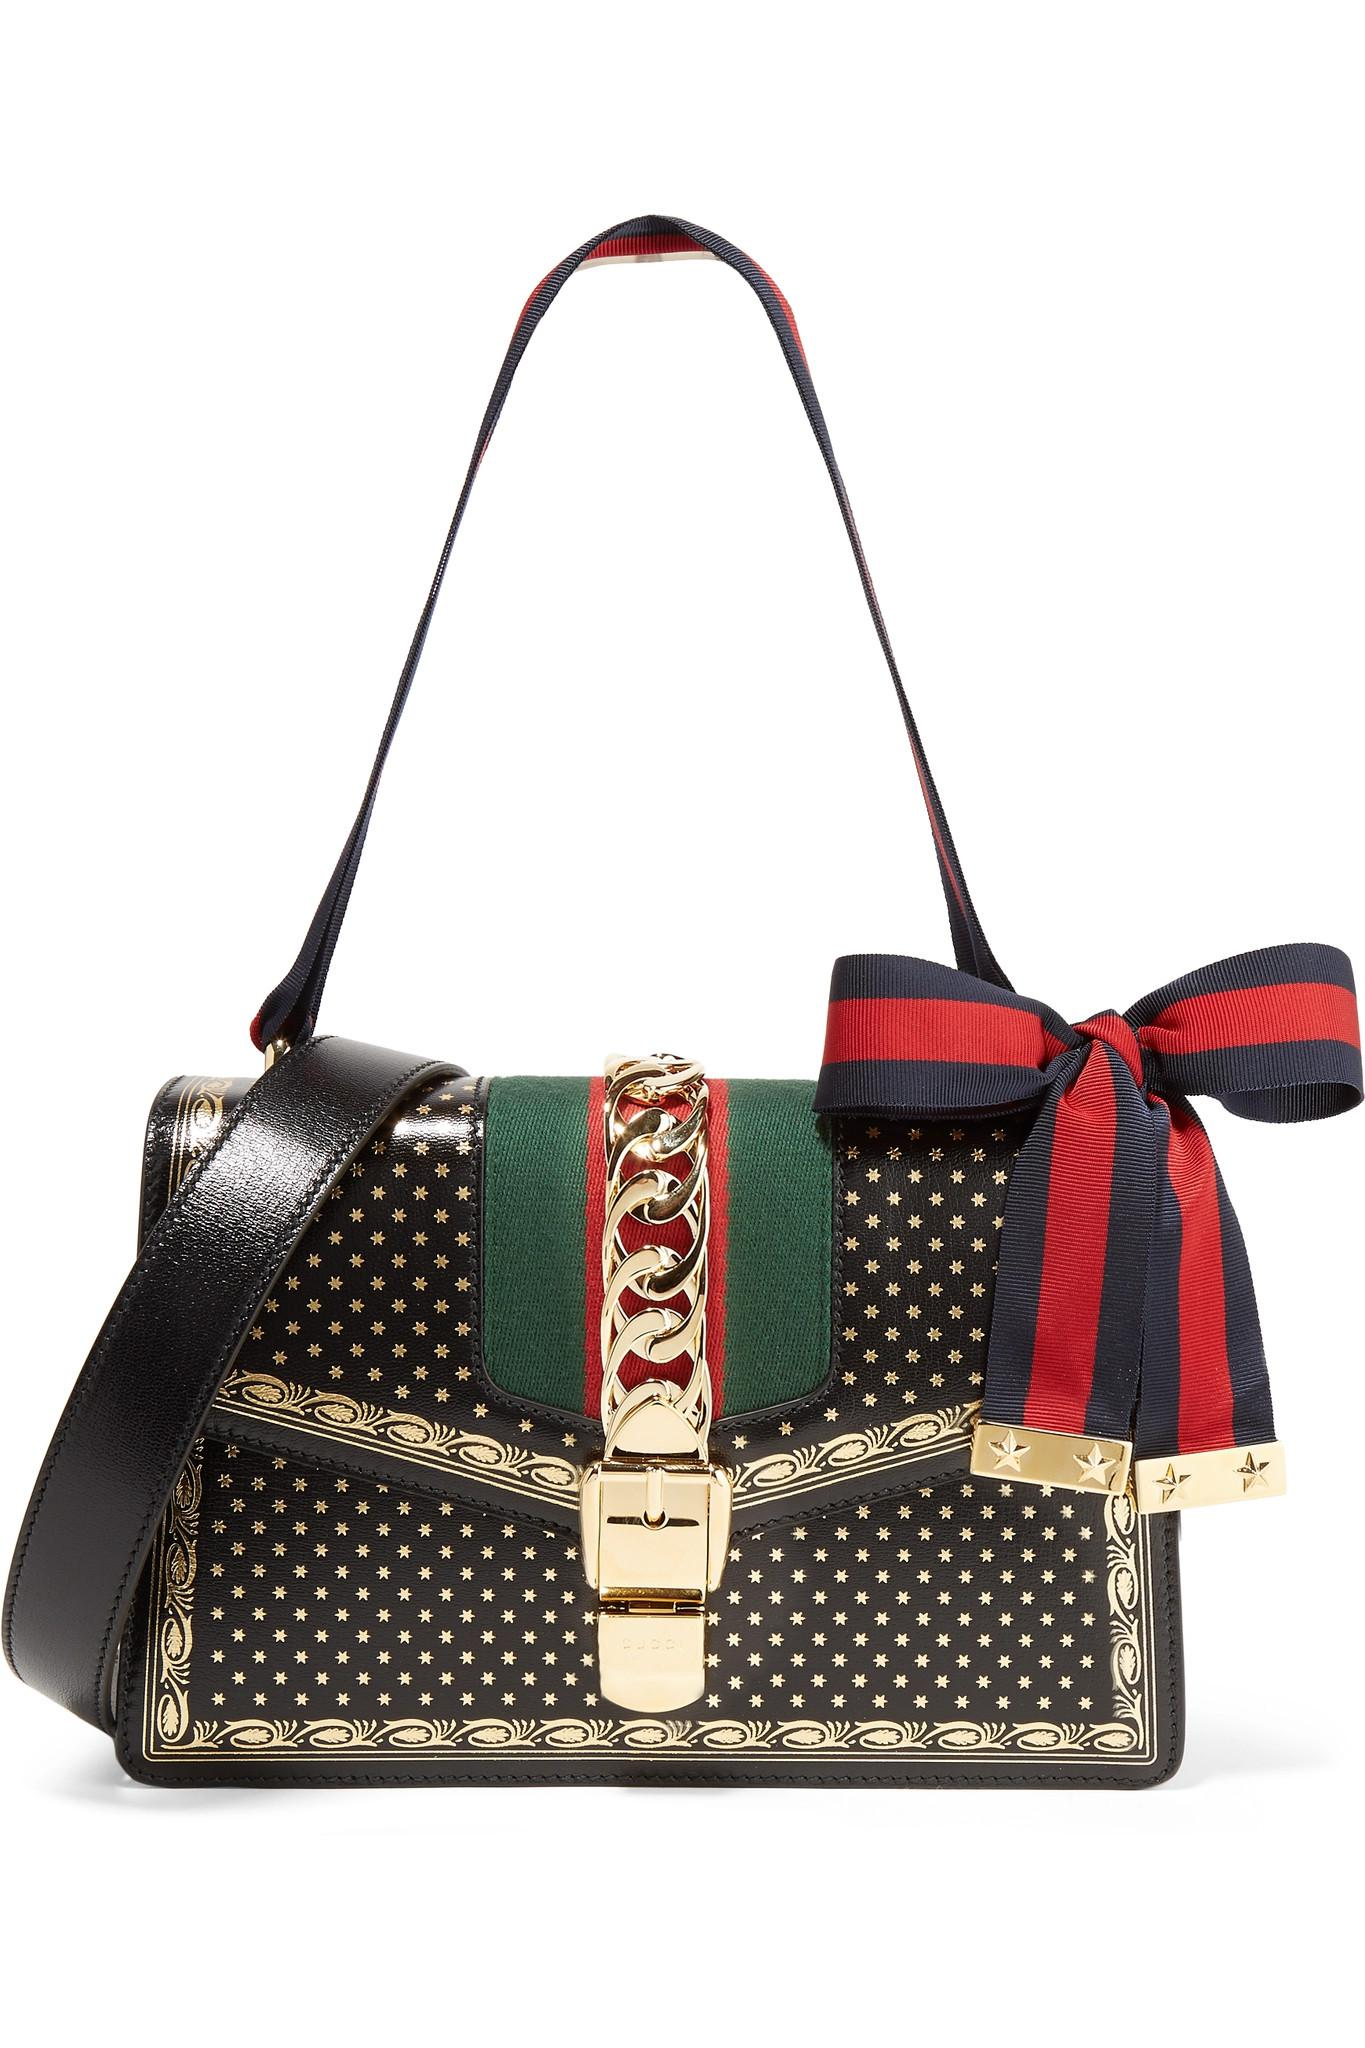 4edede8bc772c Gucci Sylvie Small Chain-embellished Printed Leather Shoulder Bag in ...